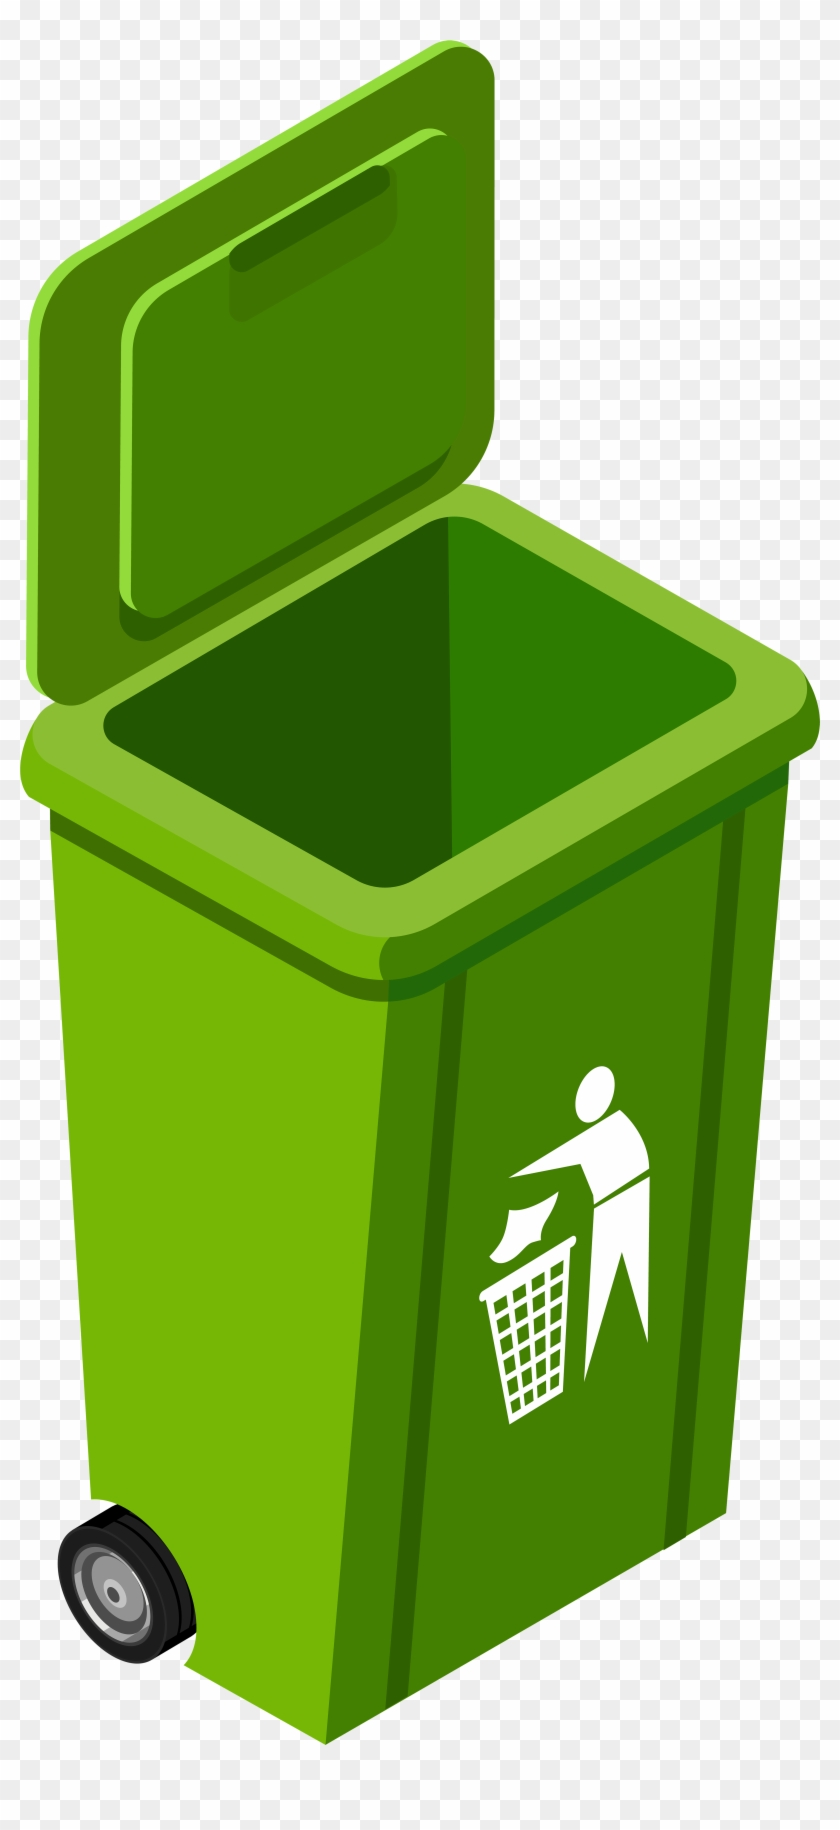 Green Trash Can Png Clip Art Image.